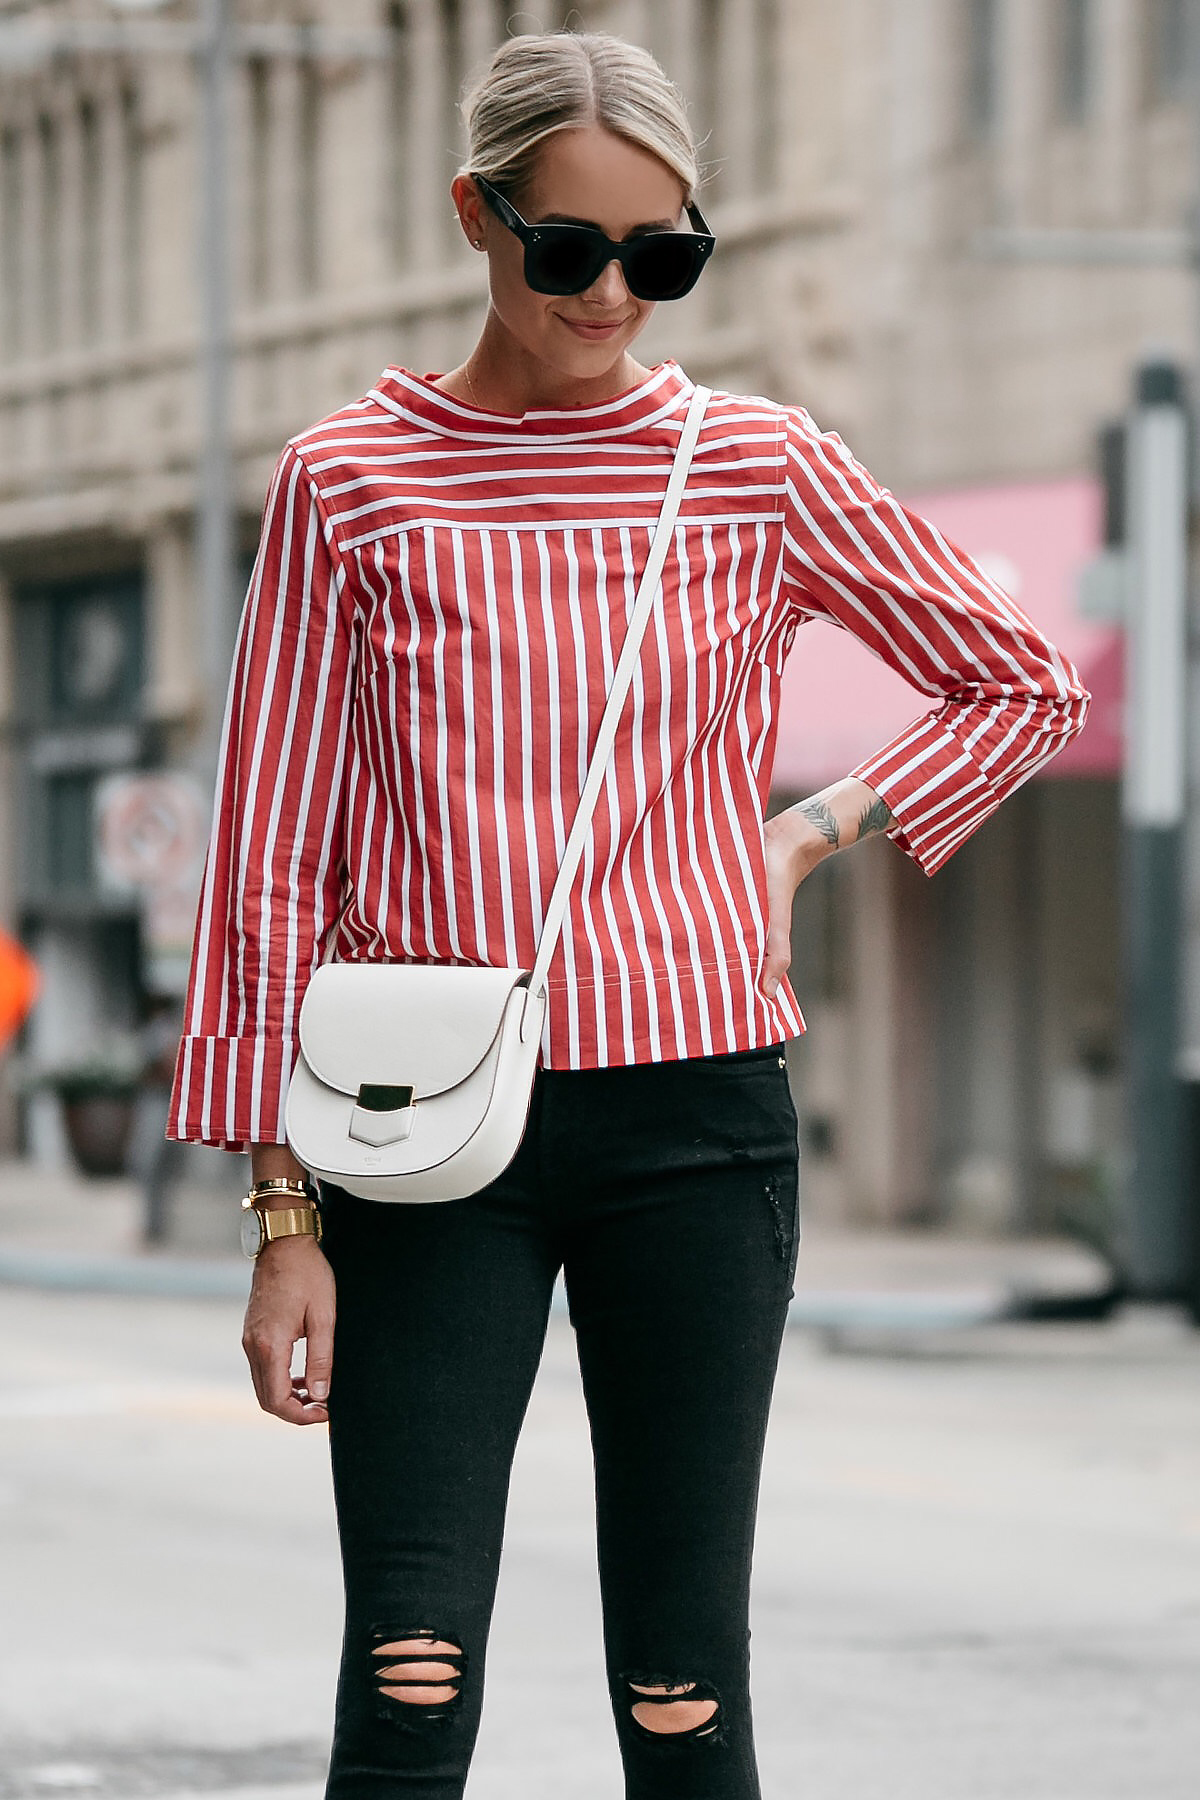 Blonde Woman Wearing Jcrew Red White Striped Shirt Celine White Trotteur Handbag Black Ripped Skinny Jeans Fashion Jackson Dallas Blogger Fashion Blogger Street Style